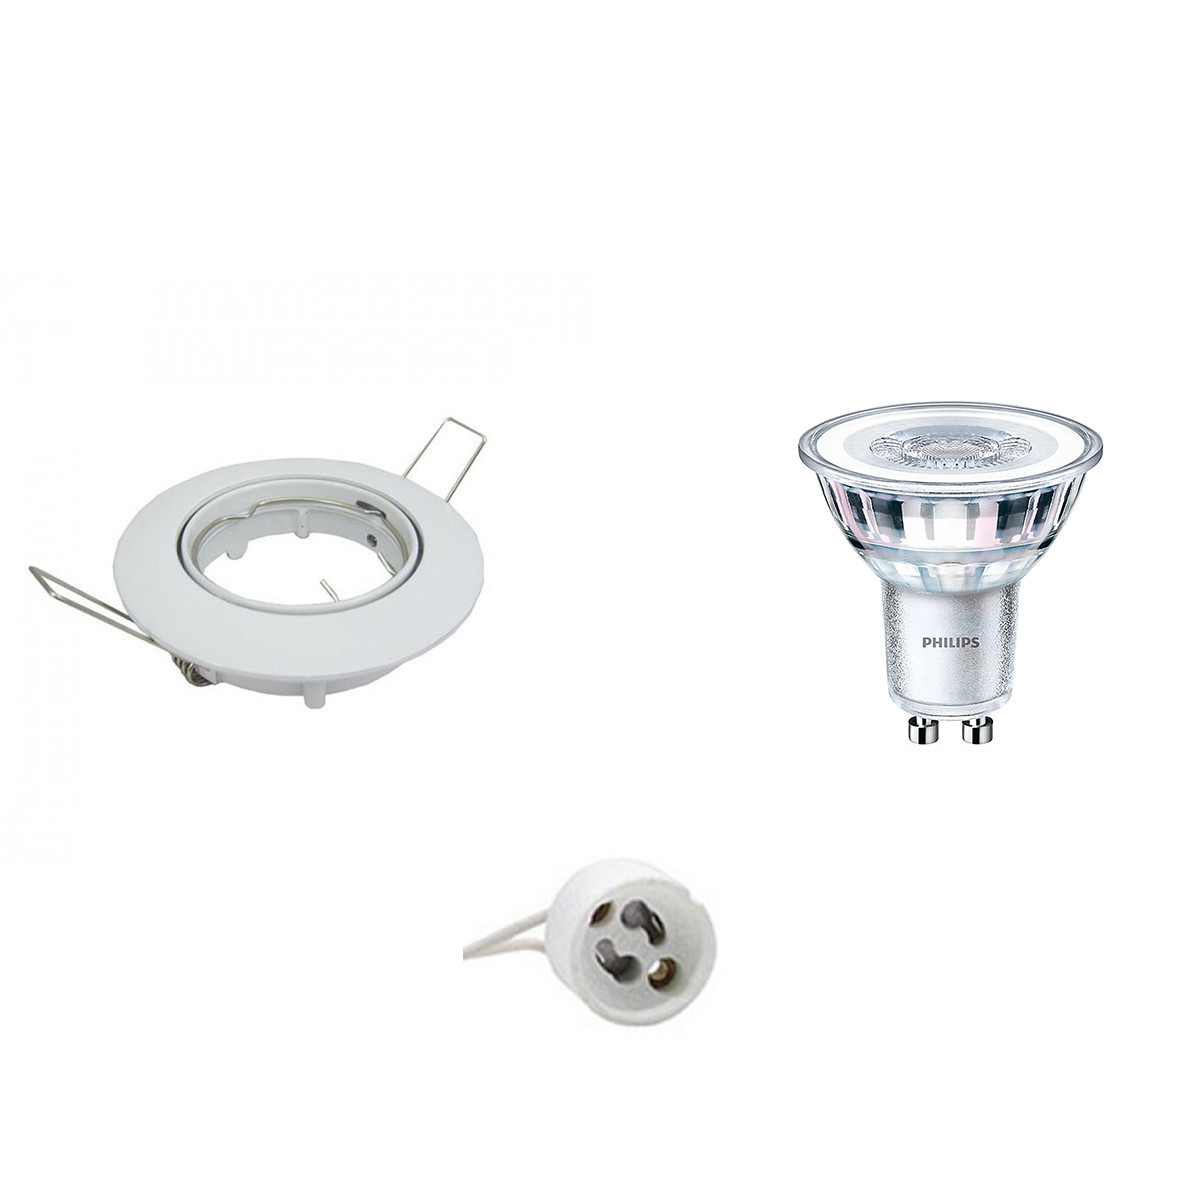 PHILIPS - LED Spot Set - CorePro 827 36D - GU10 Fitting - Inbouw Rond - Glans Wit - 4.6W - Warm Wit